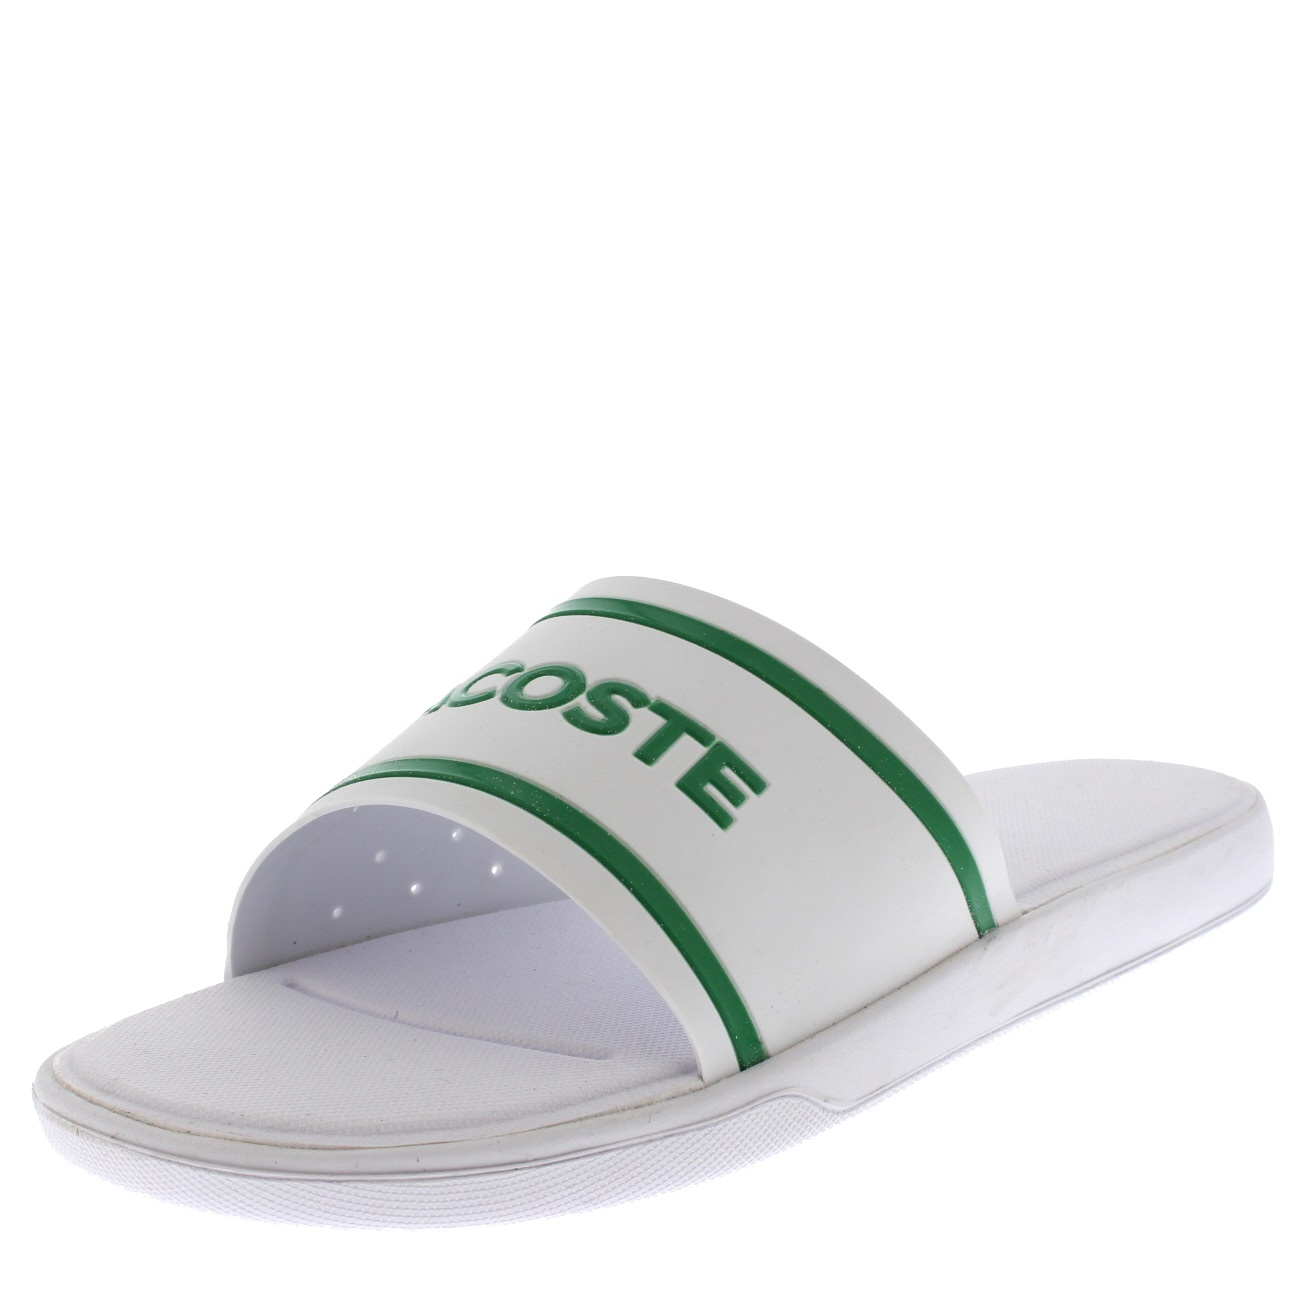 7123233c396ba Lacoste Men s L.30 Slide 118 2 Cam Flip Flops White 8 UK